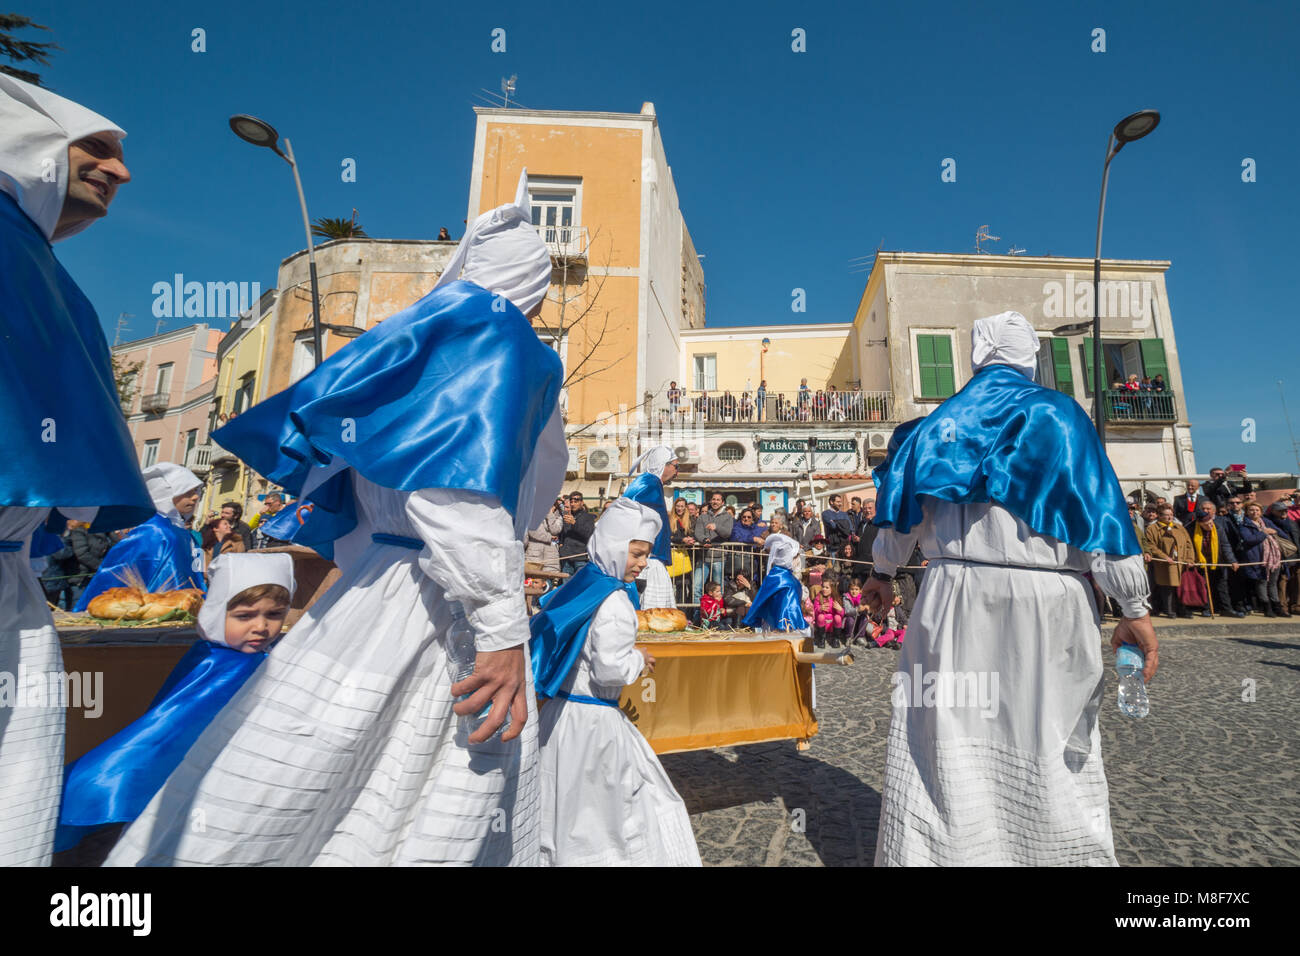 PROCIDA, ITALY - MARCH 25, 2016 - The procession of 'Misteri' celebrated at Easter's Good Friday in - Stock Image